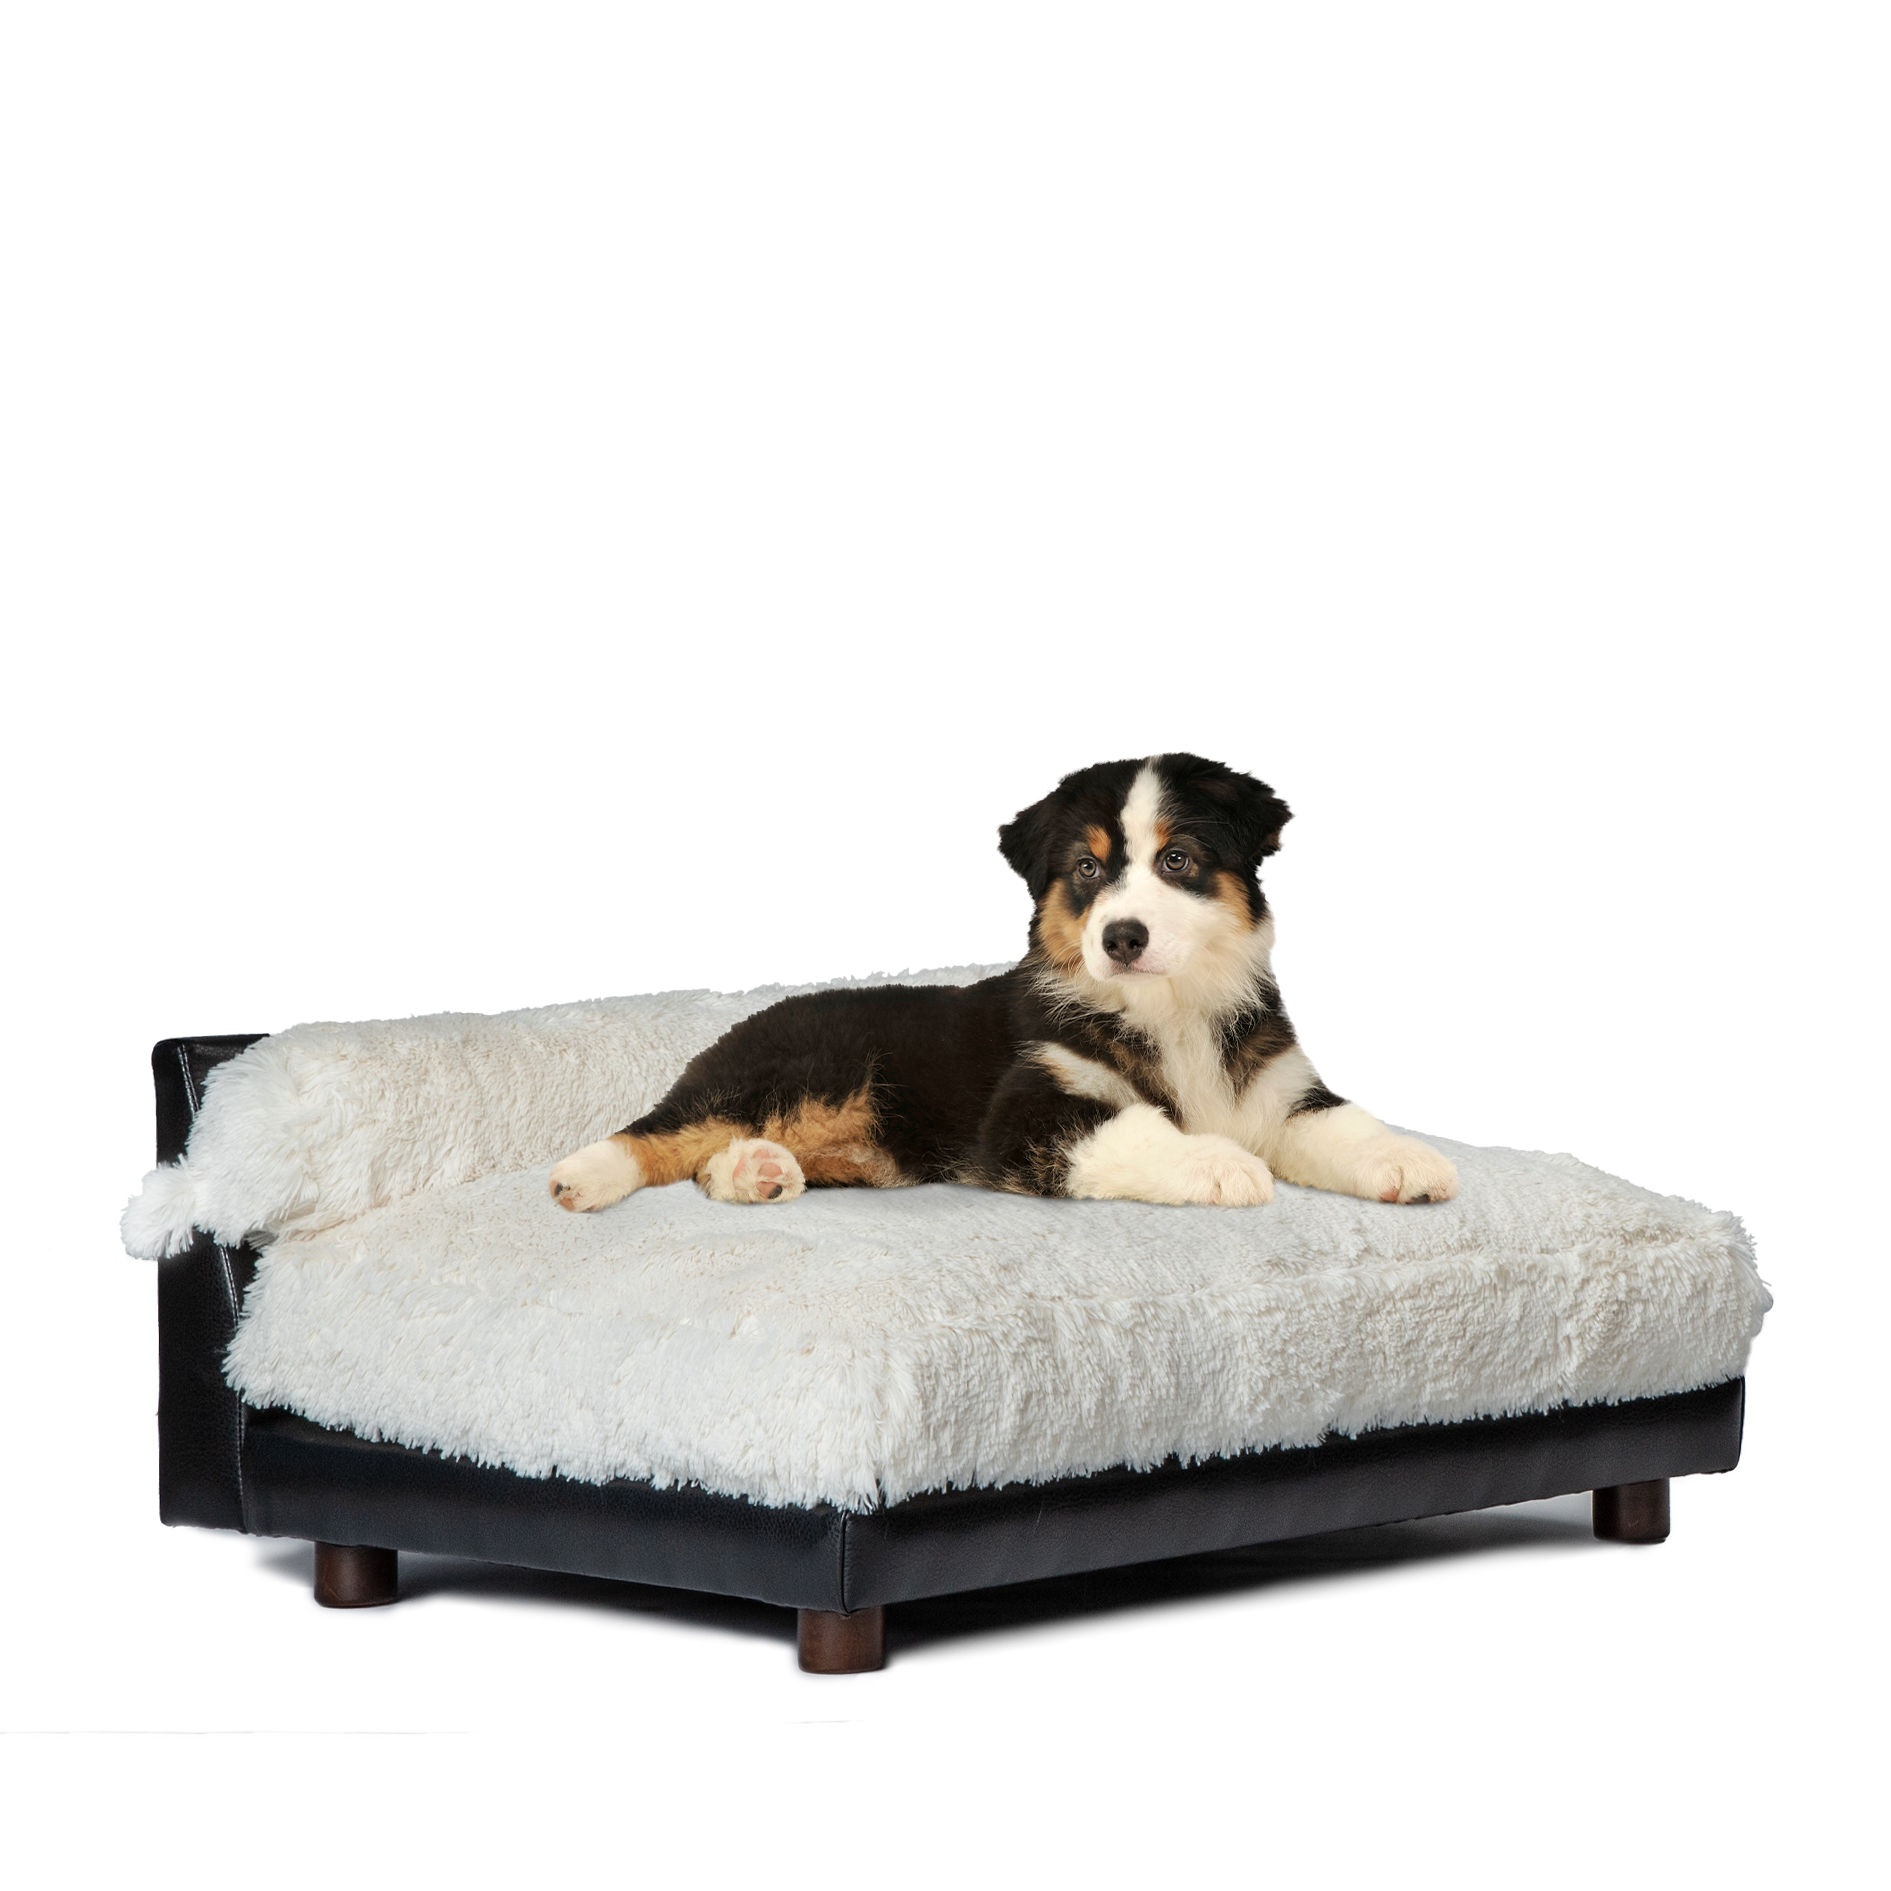 Club Nine Pets Dog Beds